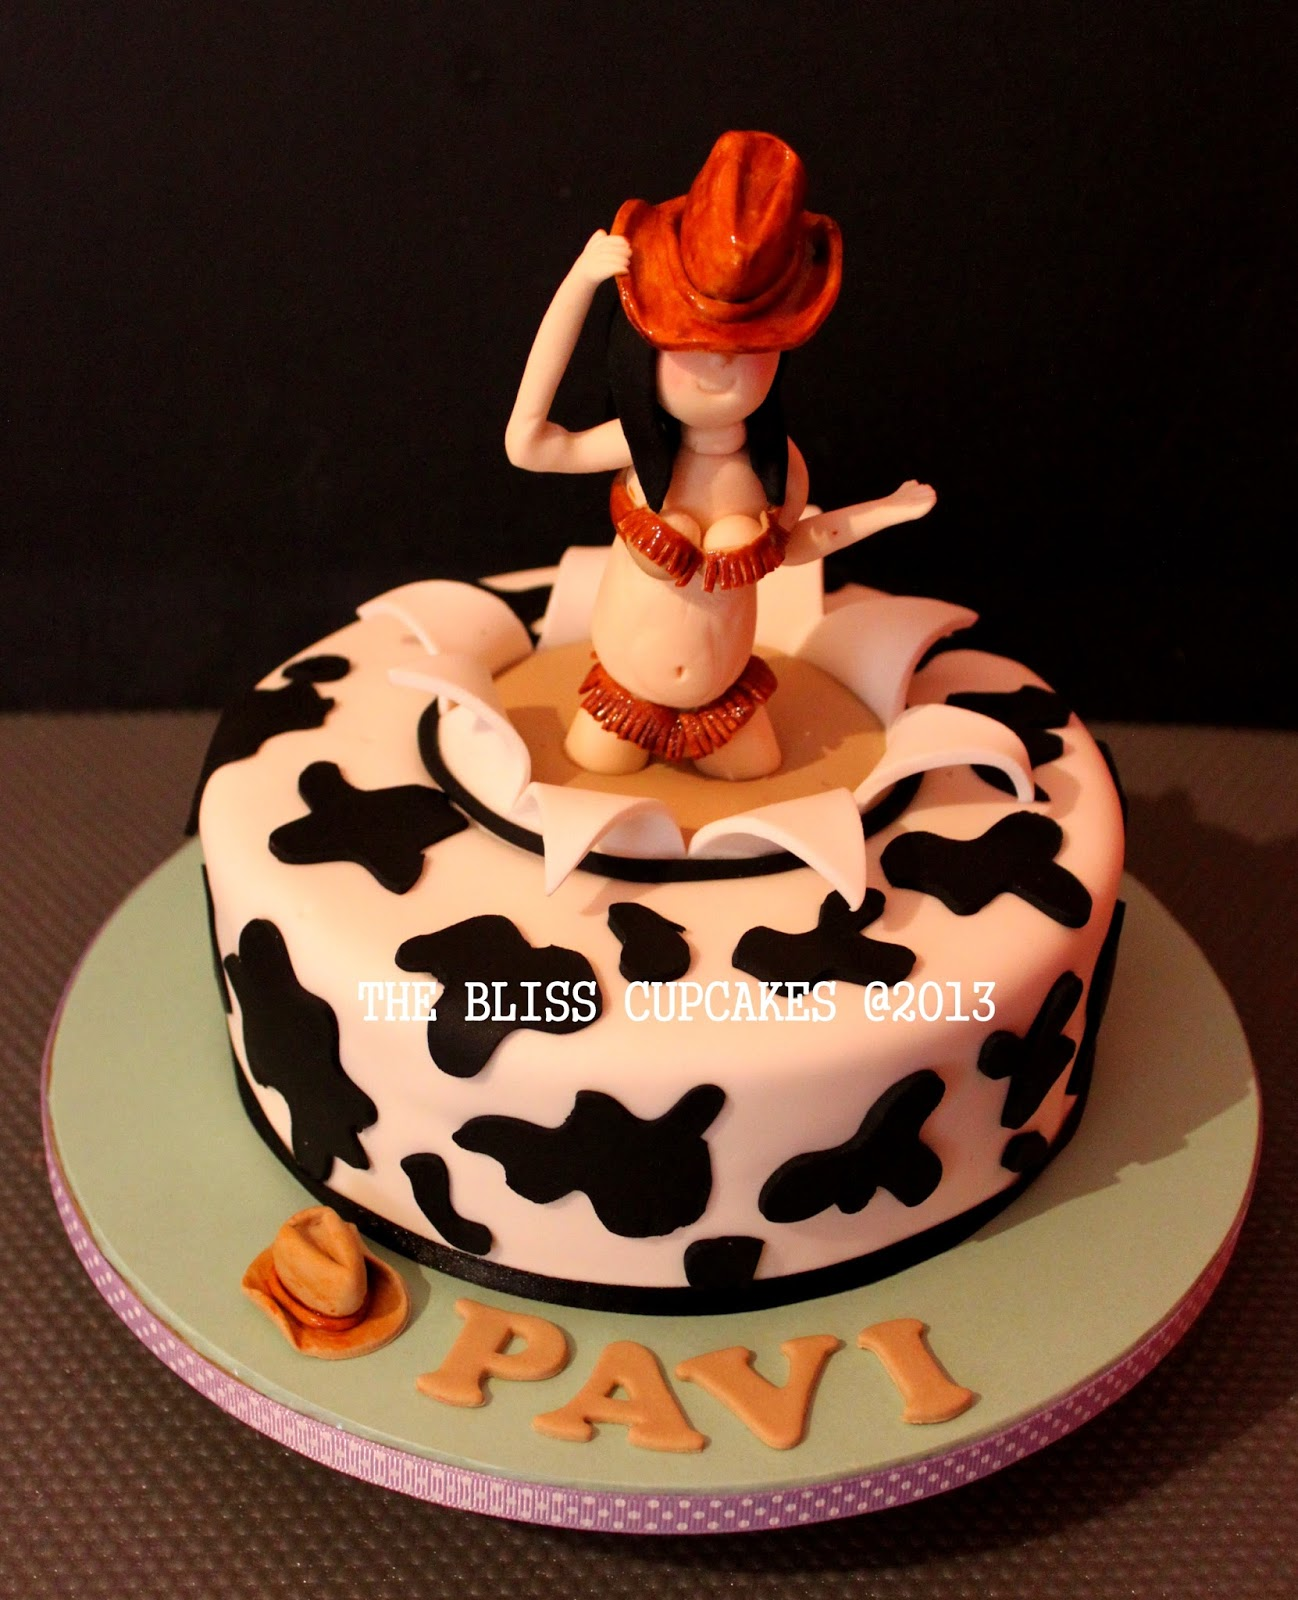 The Bliss Cupcakes Cow Girl Birthday Cake